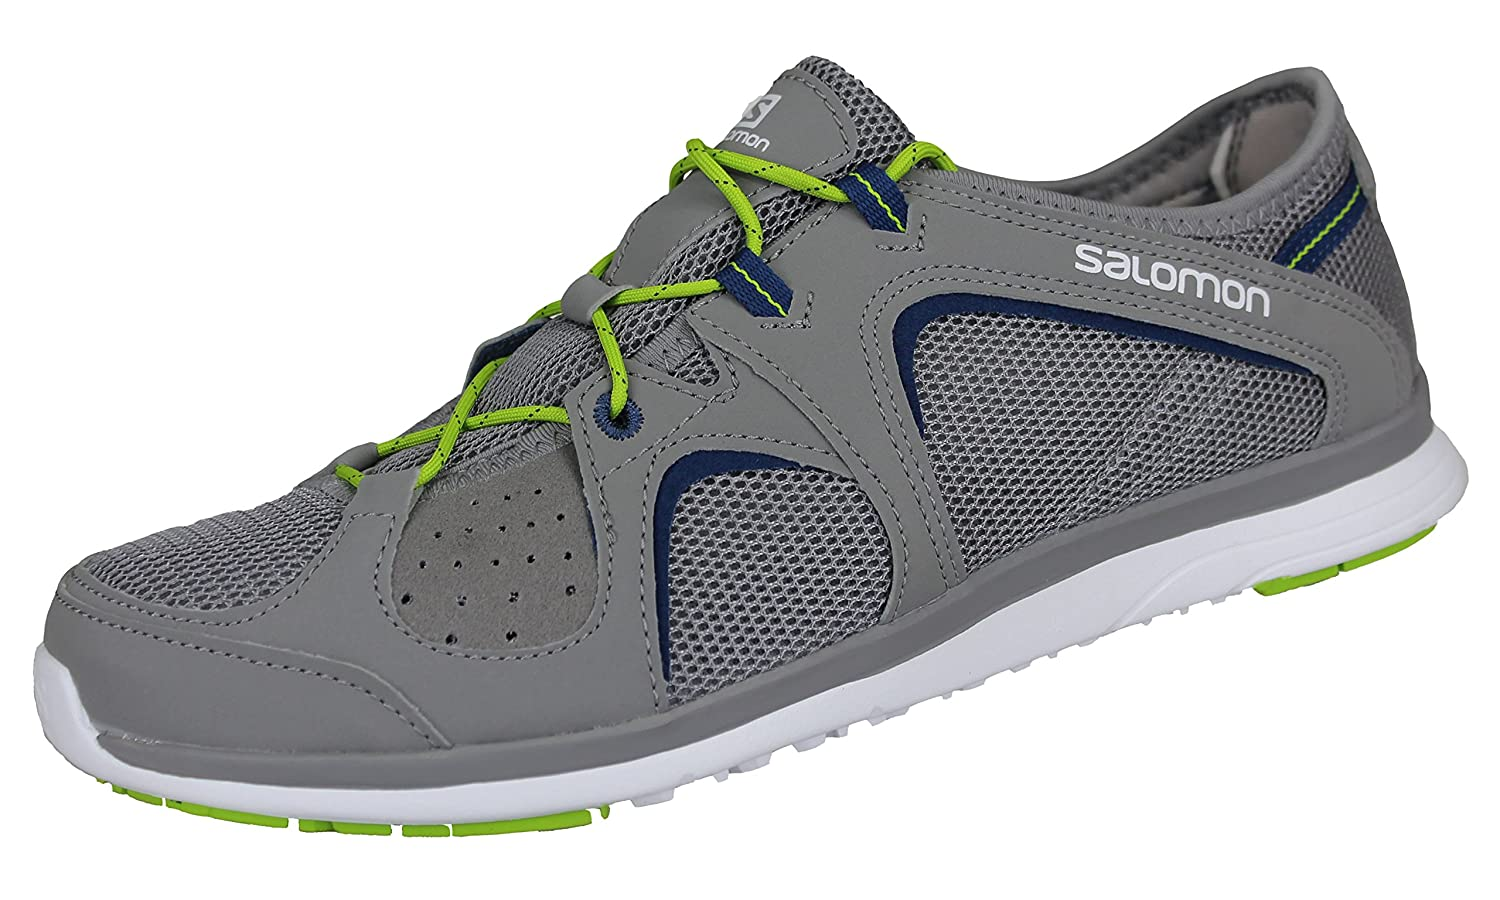 Salomon Cove light 361797 Herren Größe 42 2/3